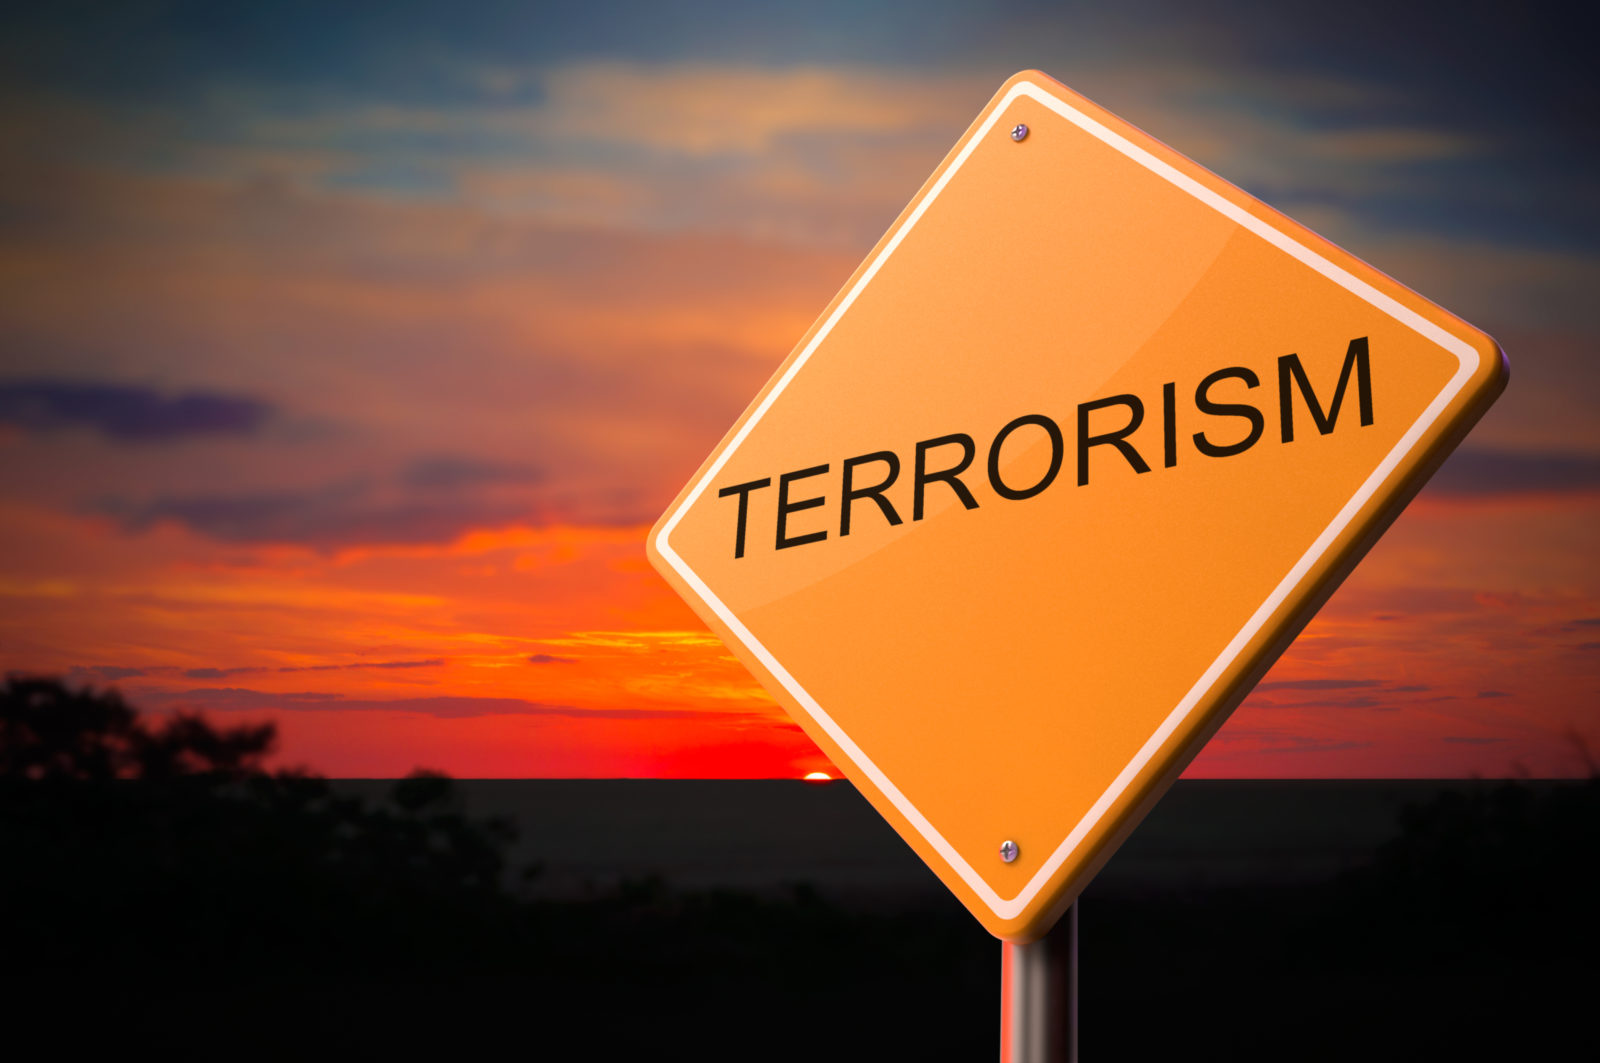 essays on the war on terror The war on terror essay writing service, custom the war on terror papers, term papers, free the war on terror samples, research papers, help.